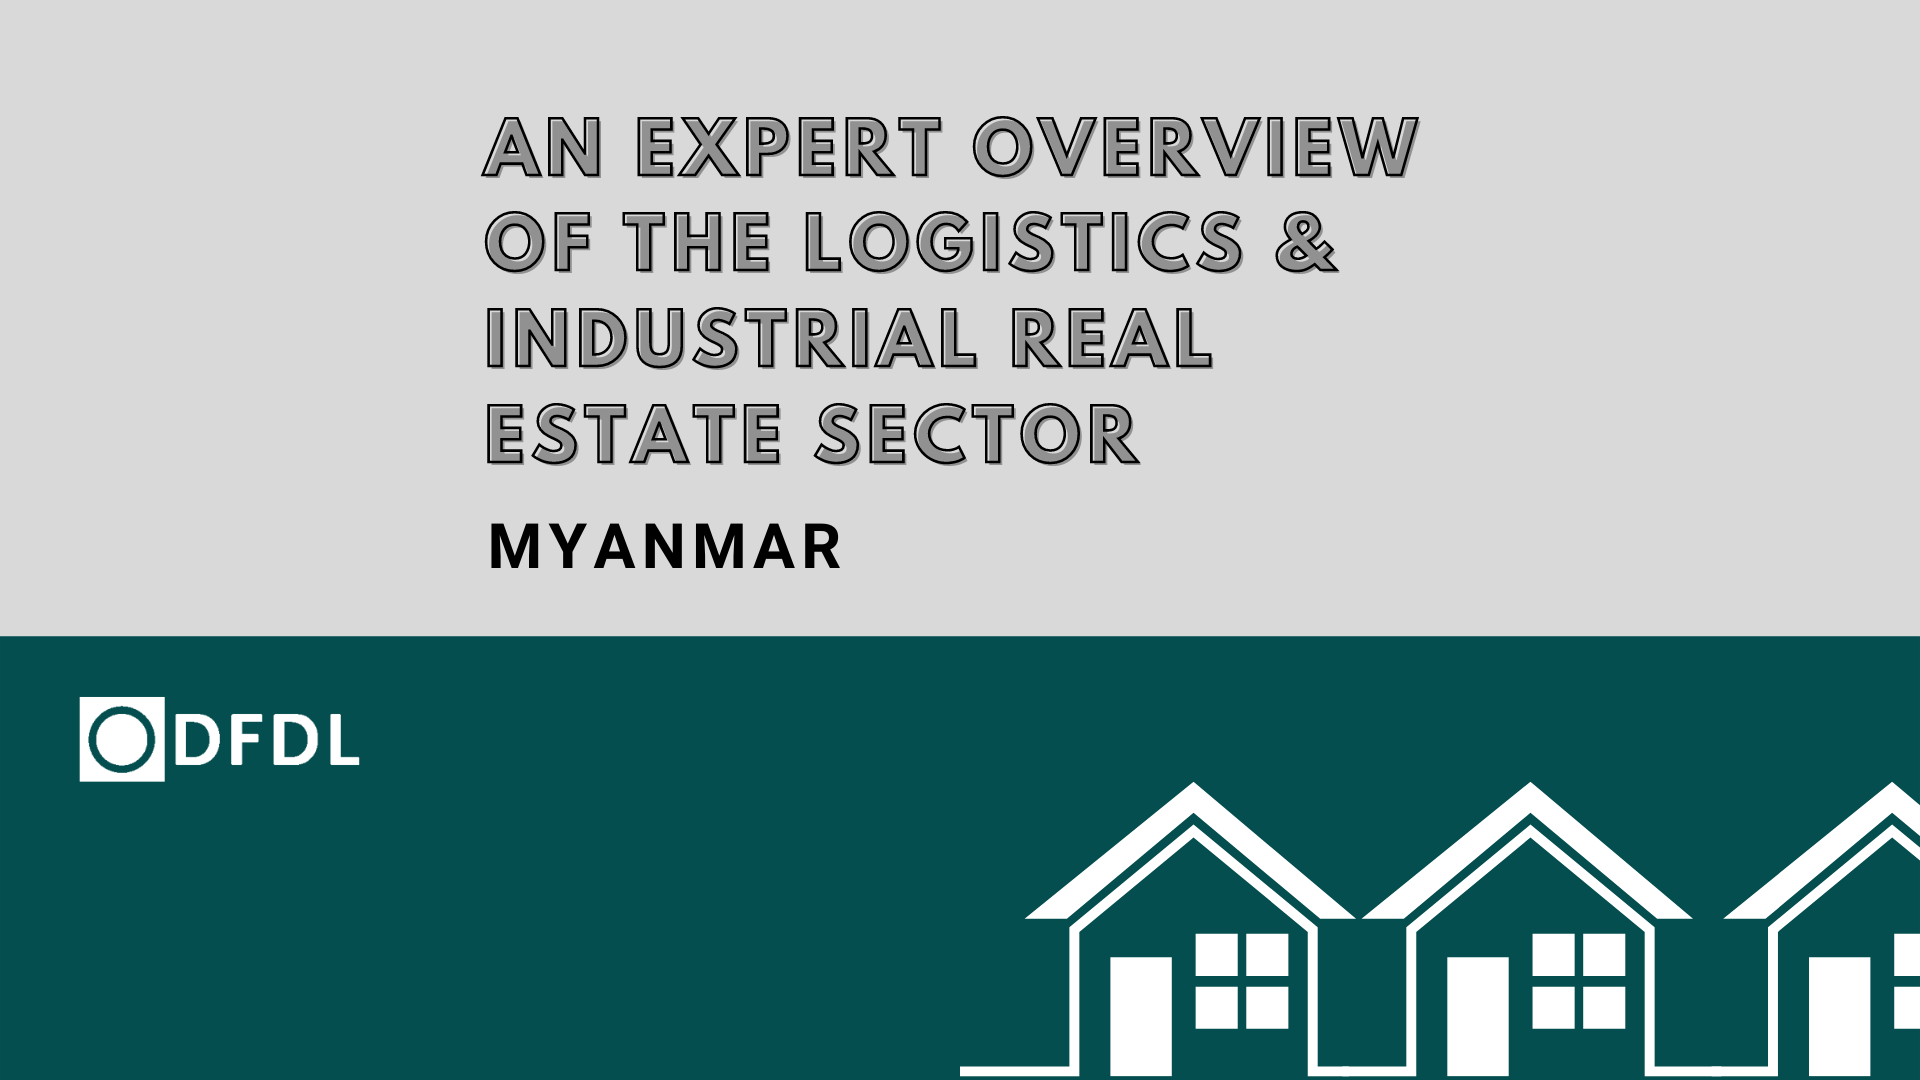 An Expert Overview of the Logistics and Industrial Real Estate Sector in Myanmar